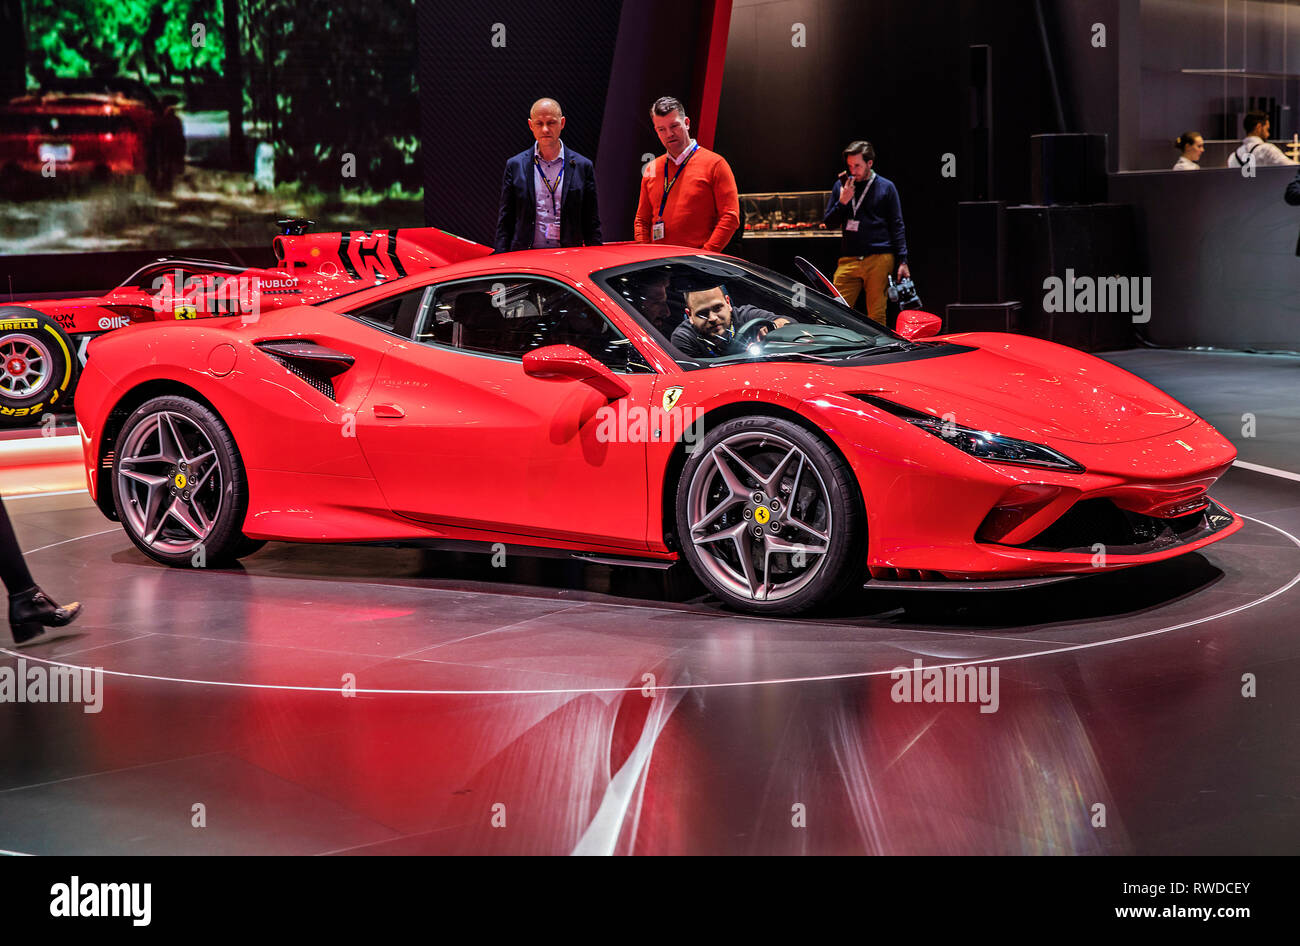 Ferrari F8 Tributo was presented during the 2019 Geneva International Motor Show on Tuesday, March 5th, 2019. (CTK Photo/Josef Horazny) - Stock Image